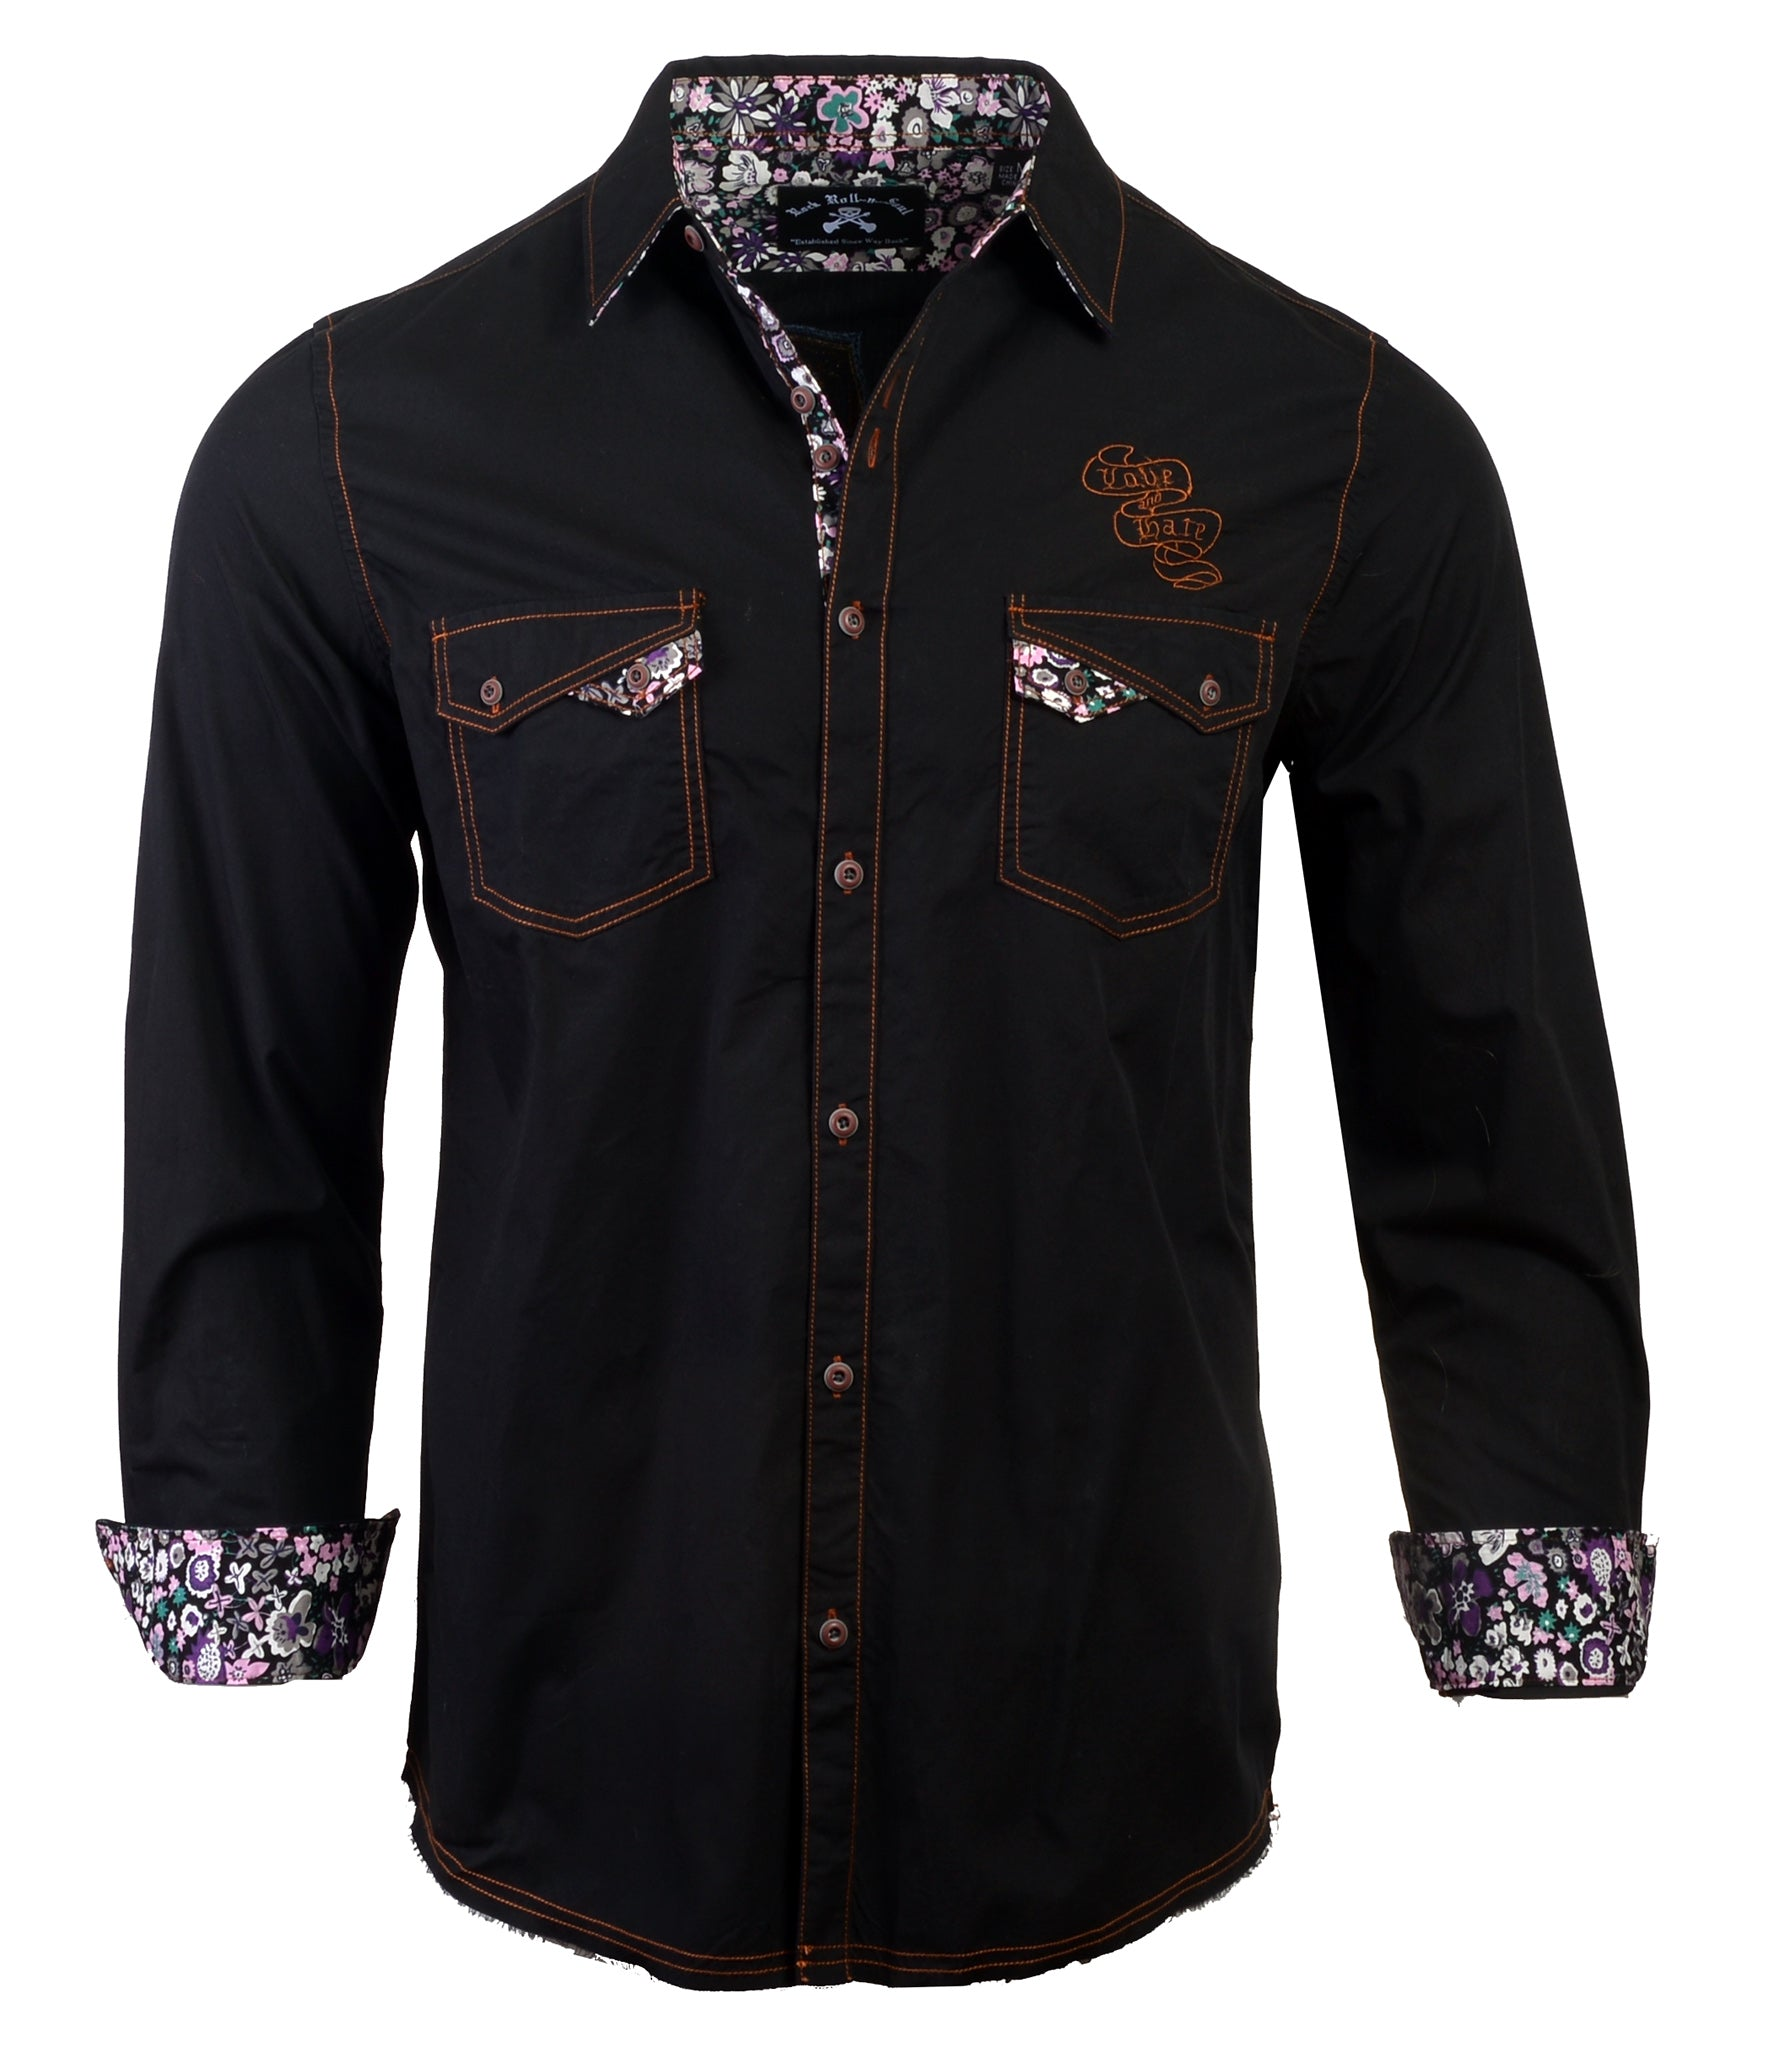 Men's Casual Fashion Button Up Shirt - Paradise City by Rock Roll n Soul